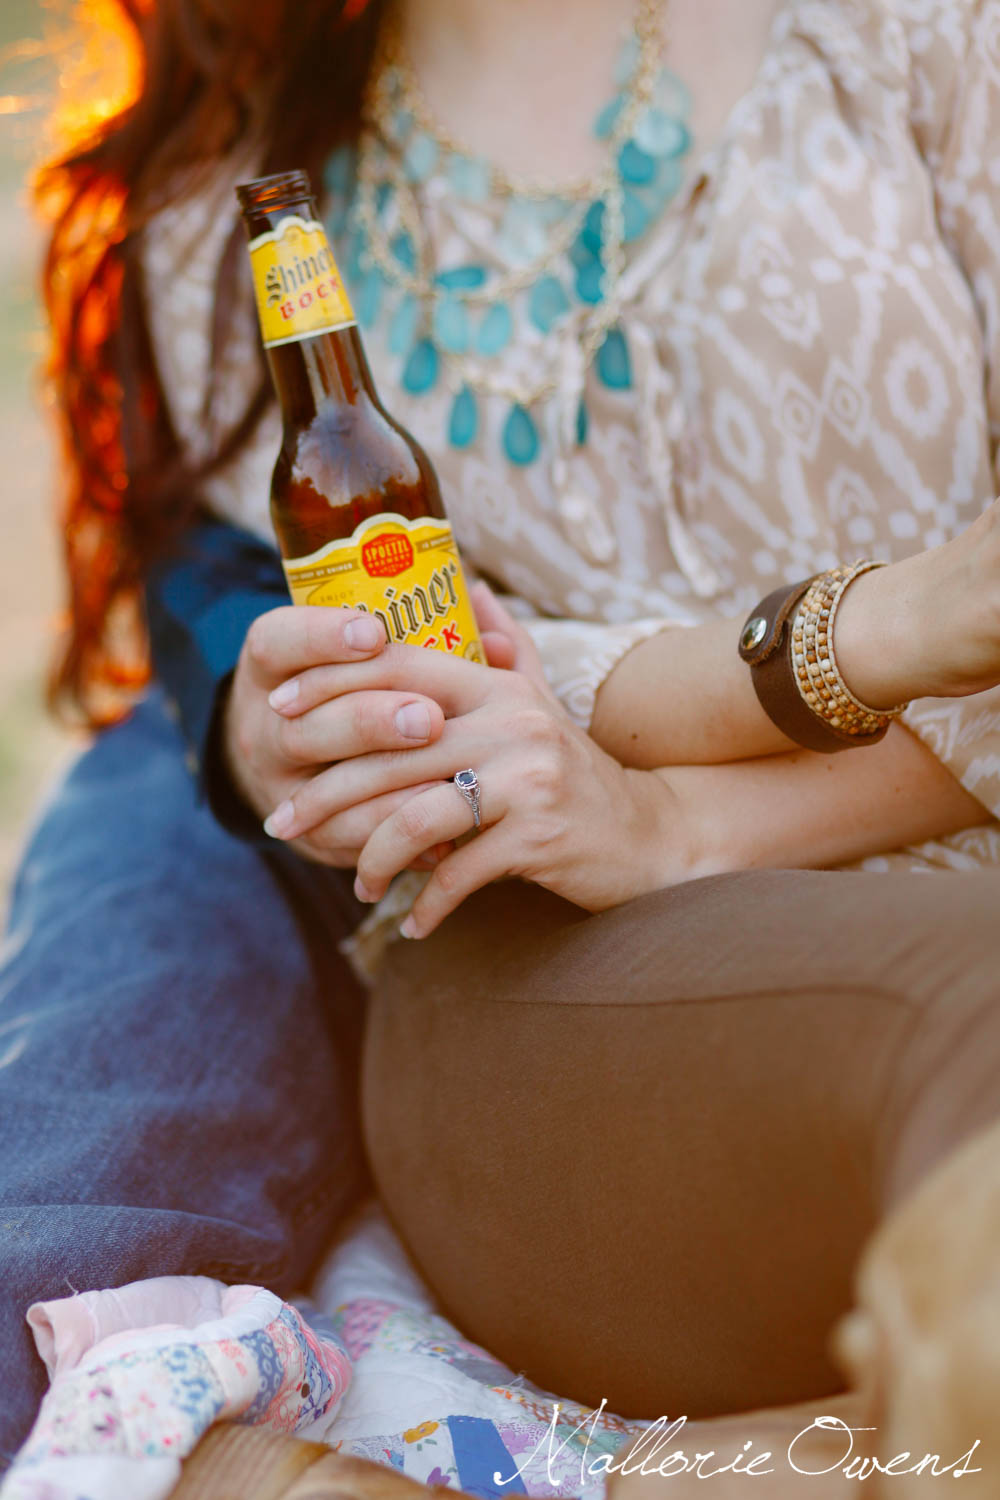 Shiner Beer Engagement Photography   MALLORIE OWENS